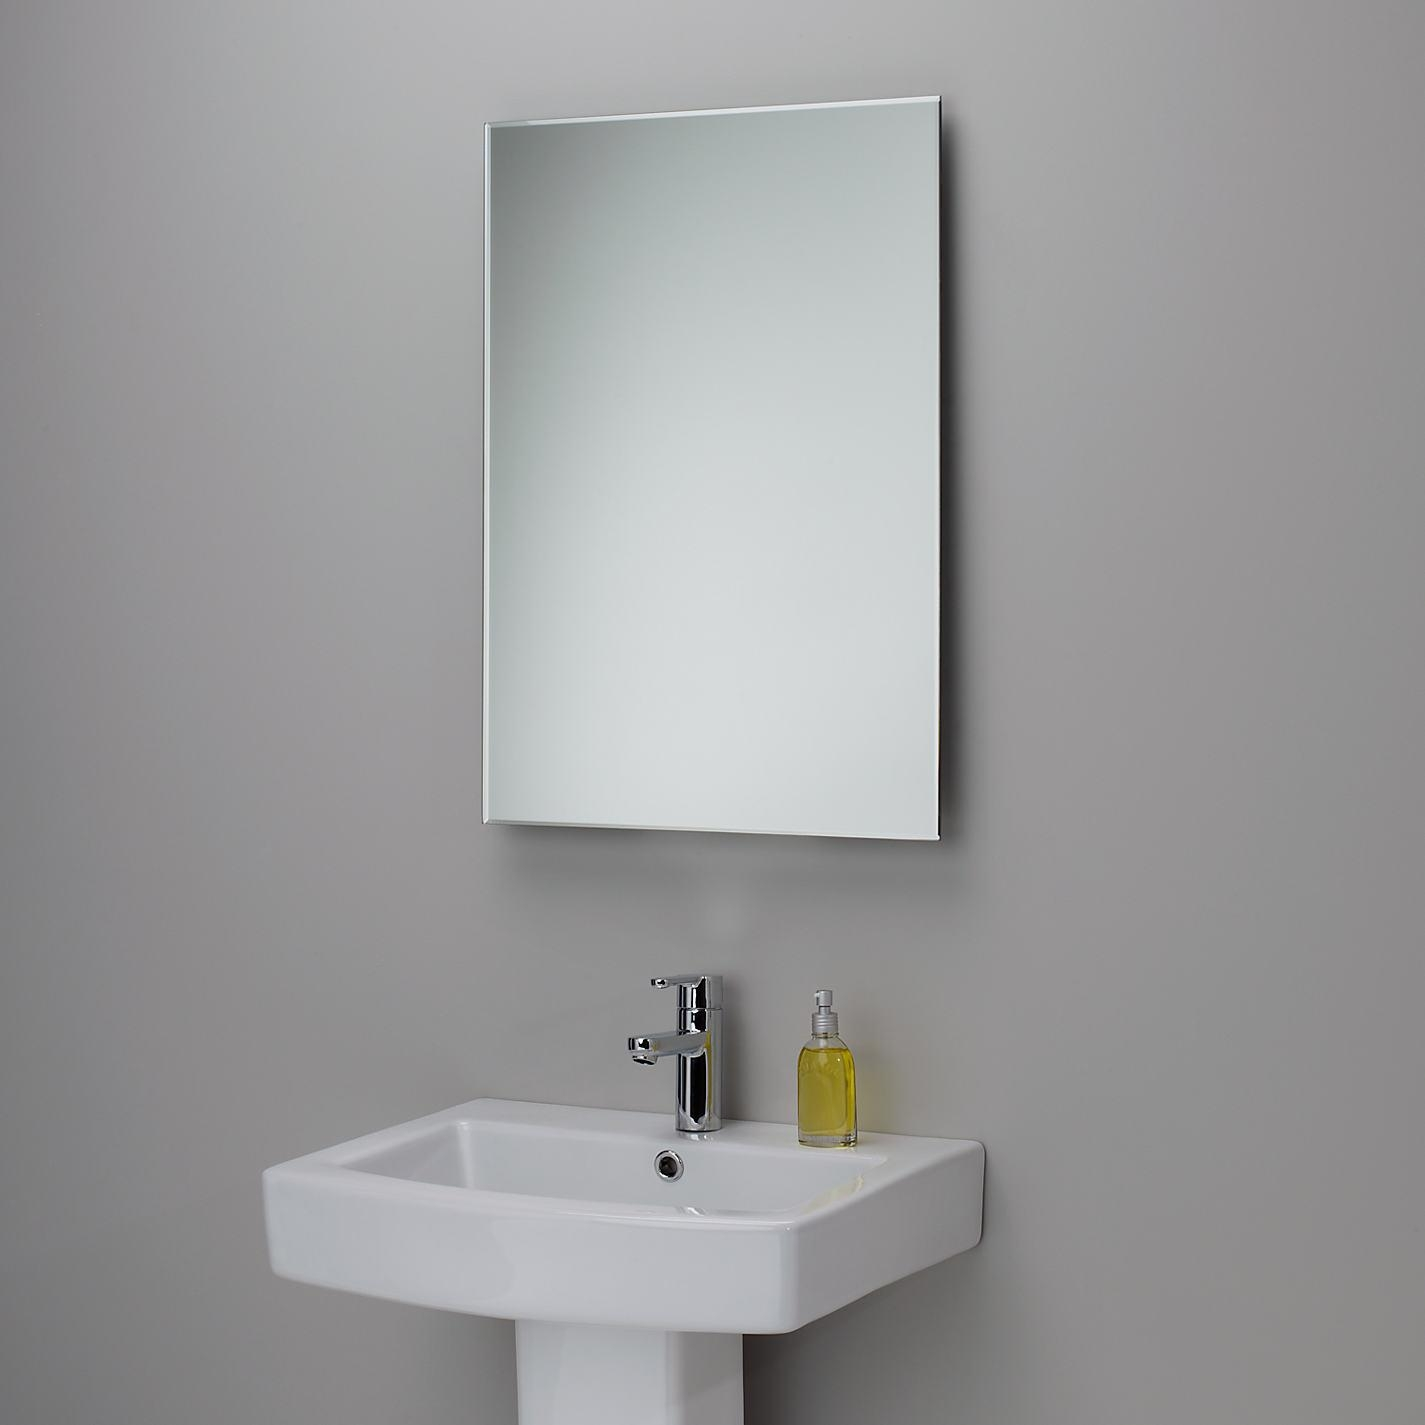 Top Custom Size Mirrors Bathrooms Decor Modern On Cool With Regard To Custom Sized Mirrors (Image 20 of 20)